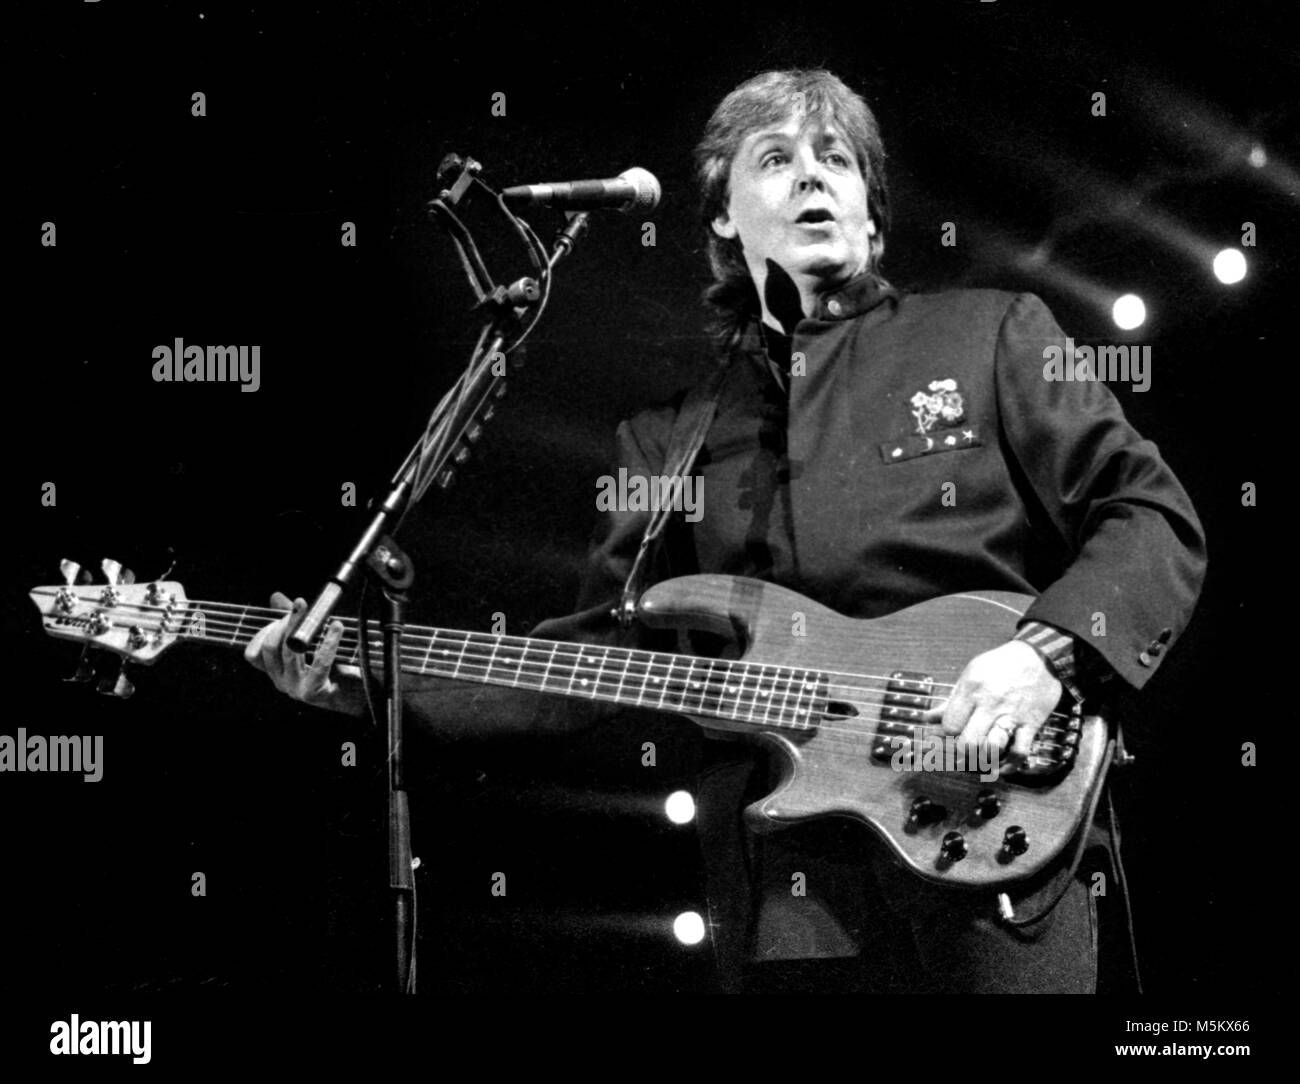 Paul McCartney in concert at the Centrum in Worcester, MA USA 1990 photo by bill belknap - Stock Image